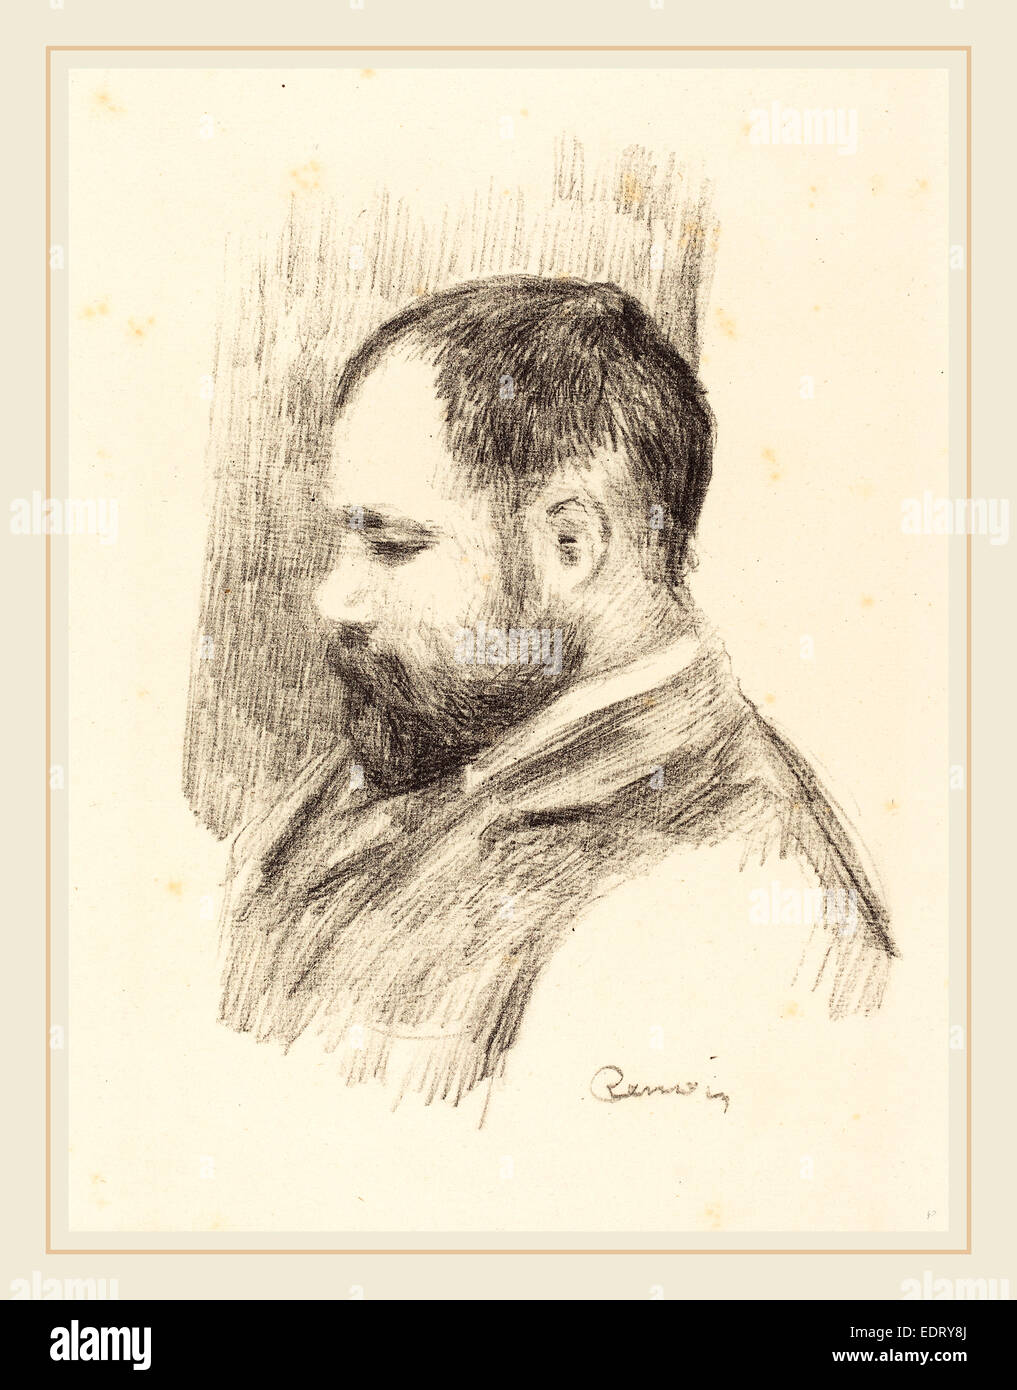 Auguste Renoir, Ambroise Vollard, French, 1841-1919, 1904, lithograph - Stock Image